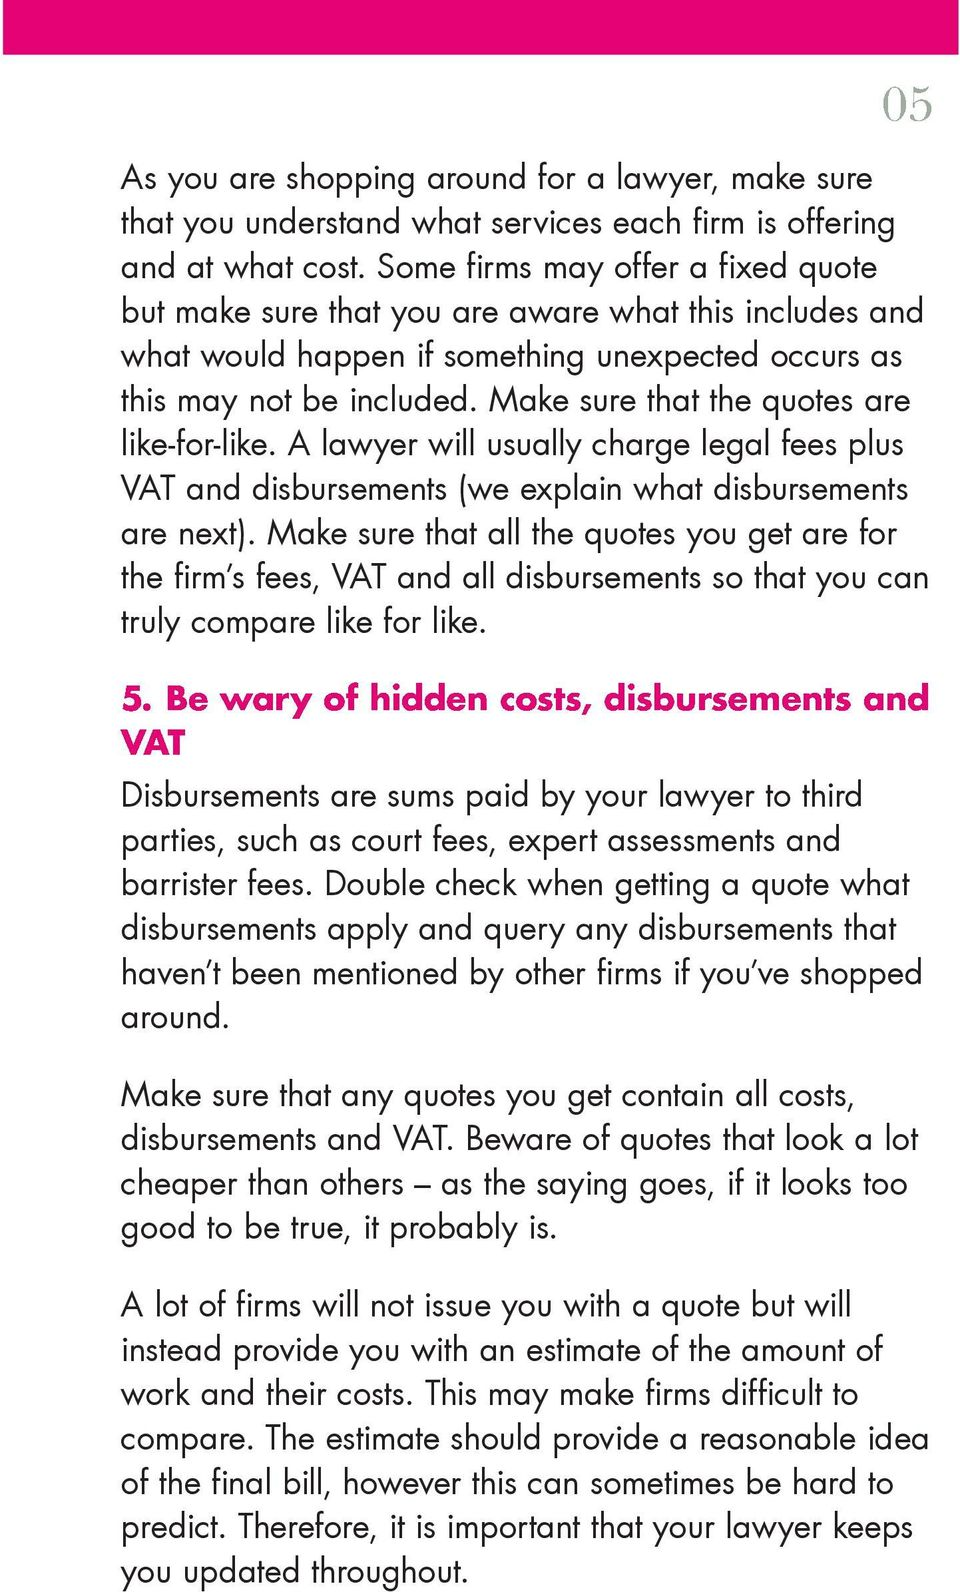 Make sure that the quotes are like-for-like. A lawyer will usually charge legal fees plus VAT and disbursements (we explain what disbursements are next).